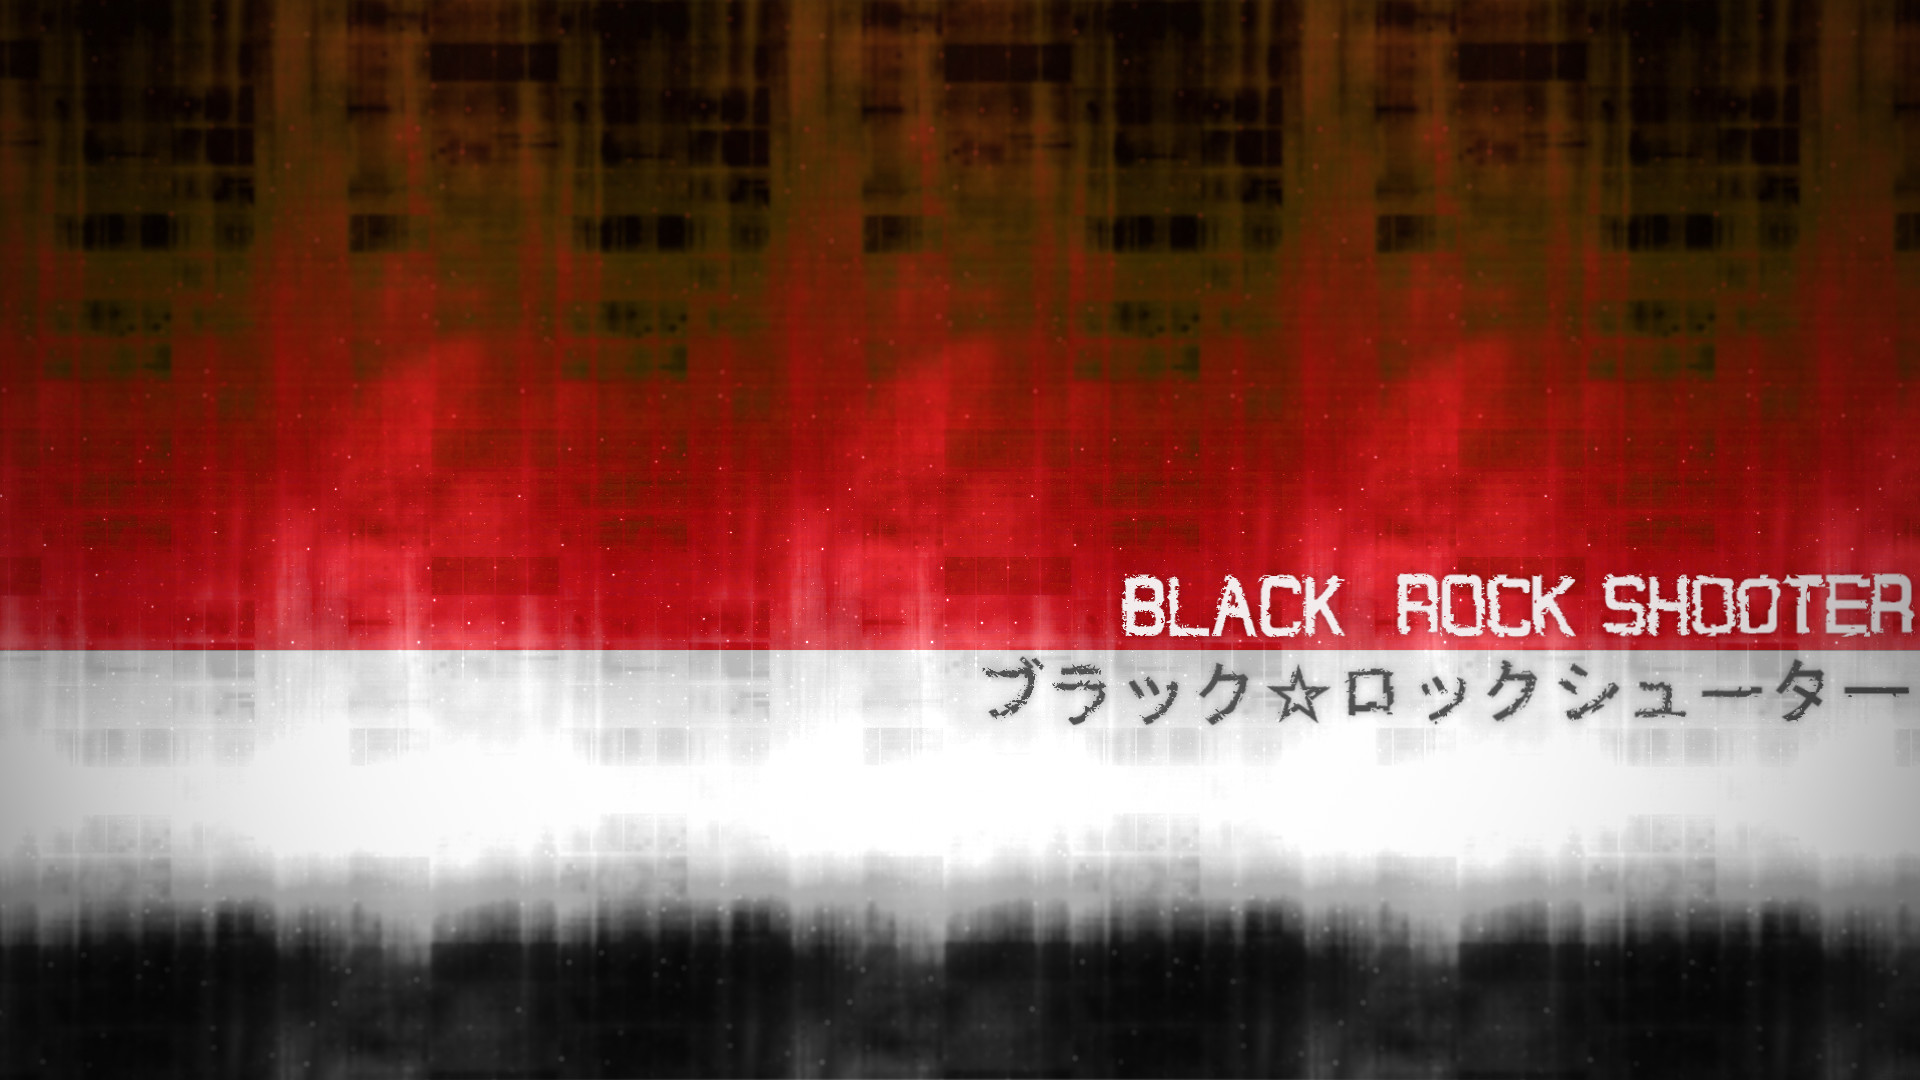 … Black Rock Shooter Wallpaper (Red/White) by Seenkoo